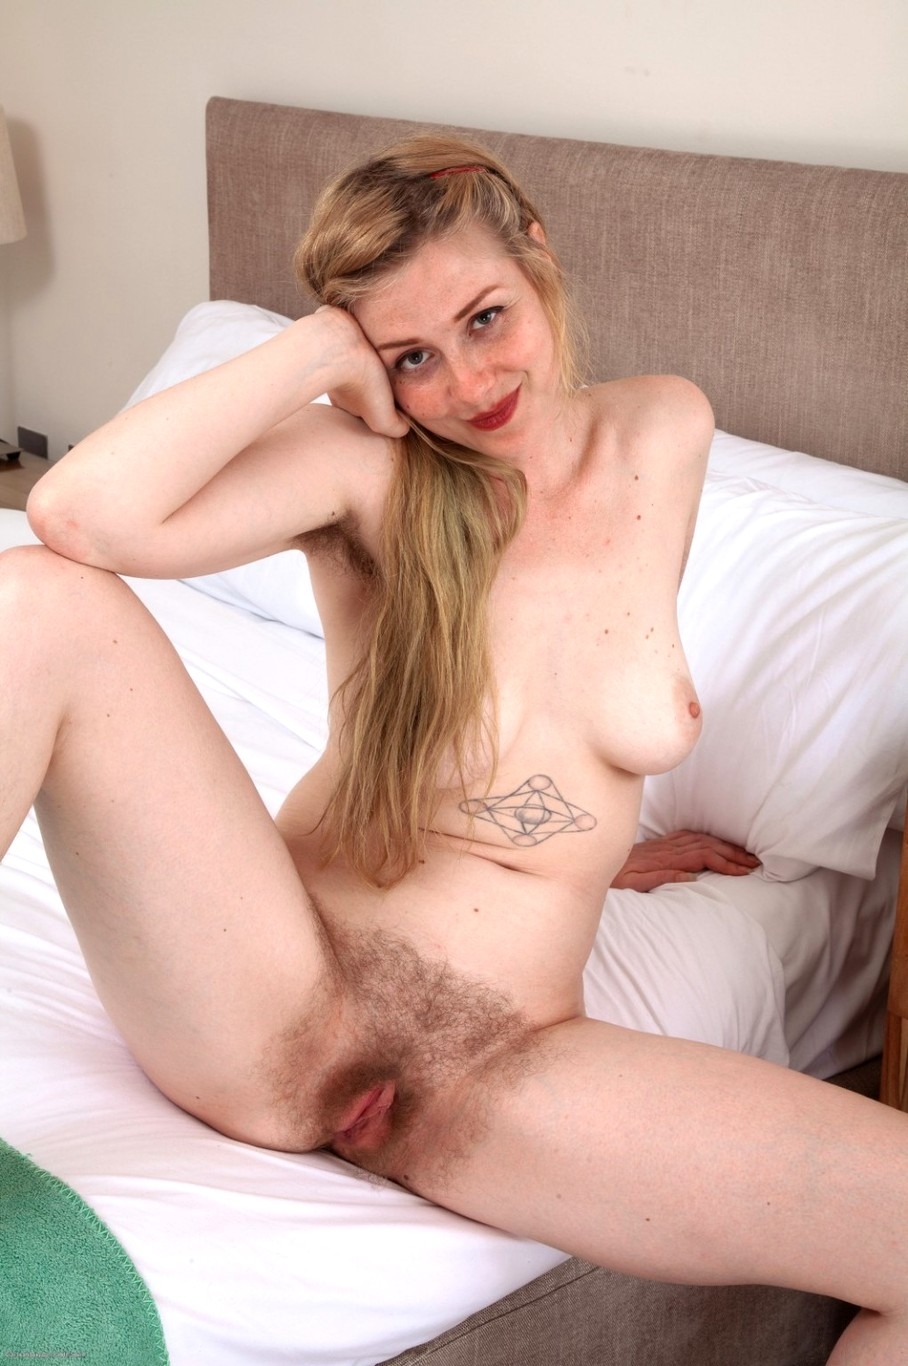 small height lady hot sexy porn